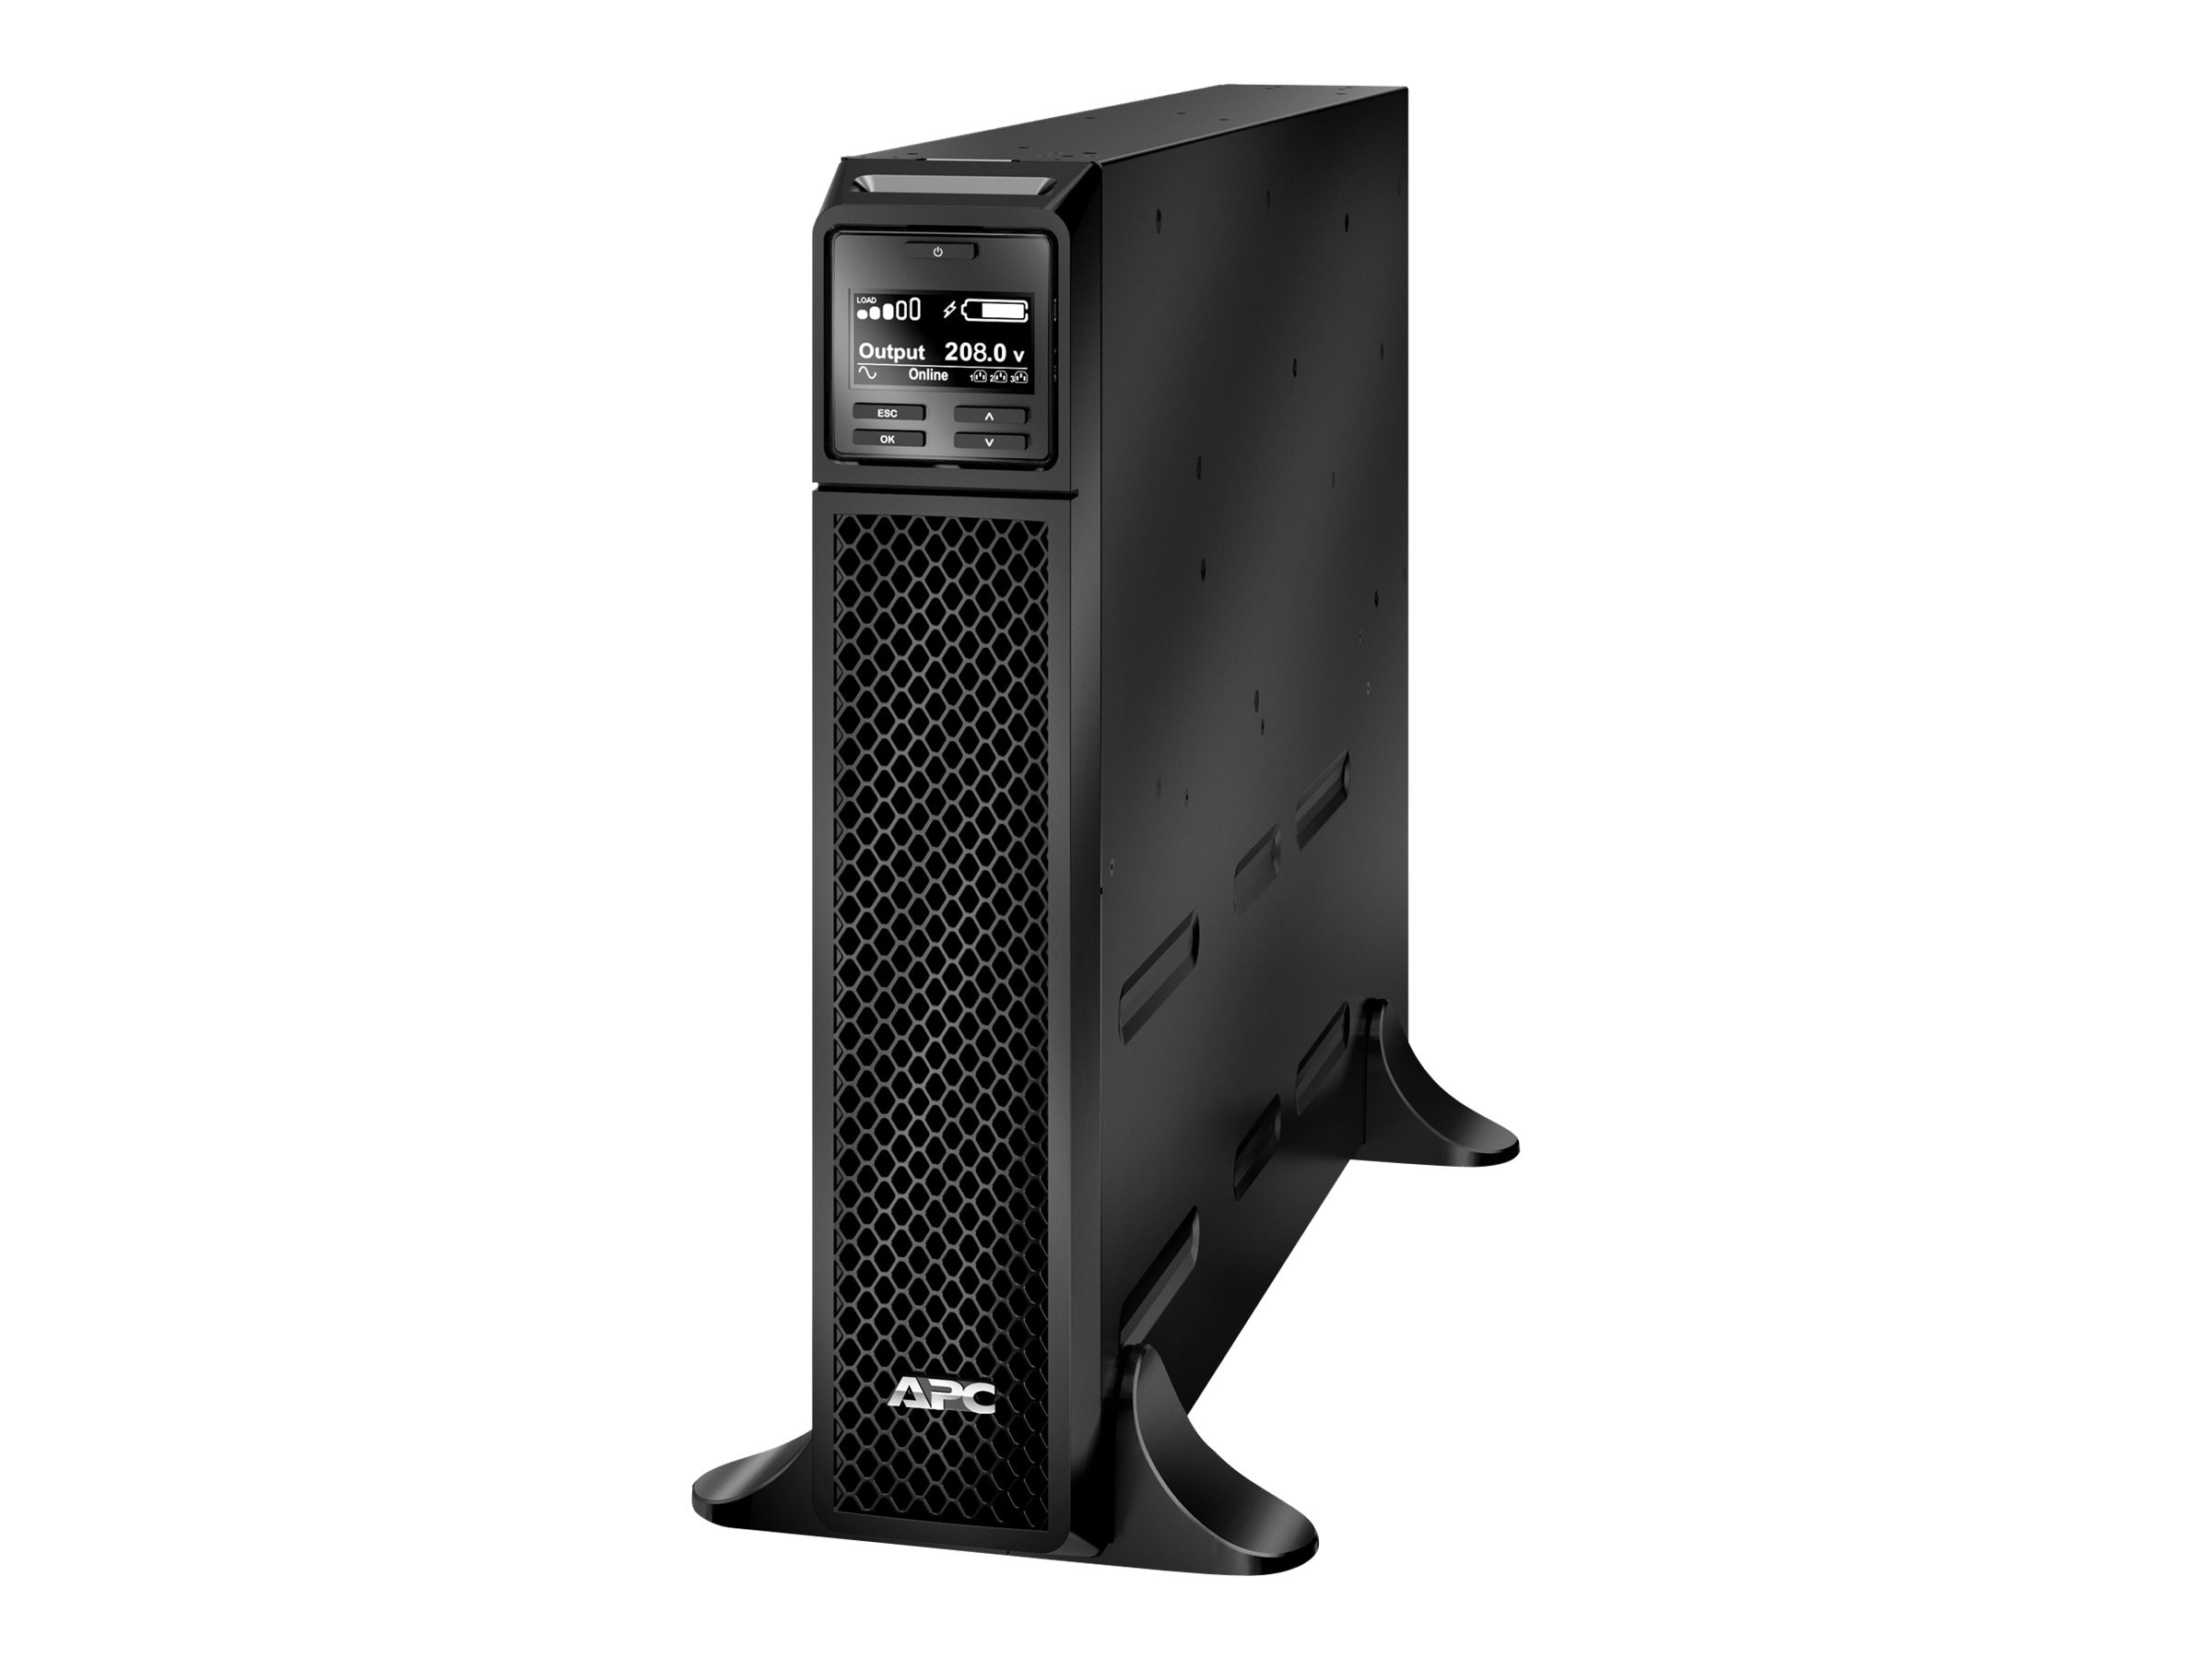 APC Smart-UPS SRT 3000VA 2700W 208V Online UPS L6-20P Input (3) Outlets USB Serial Smartslot, SRT3000XLT, 30899248, Battery Backup/UPS